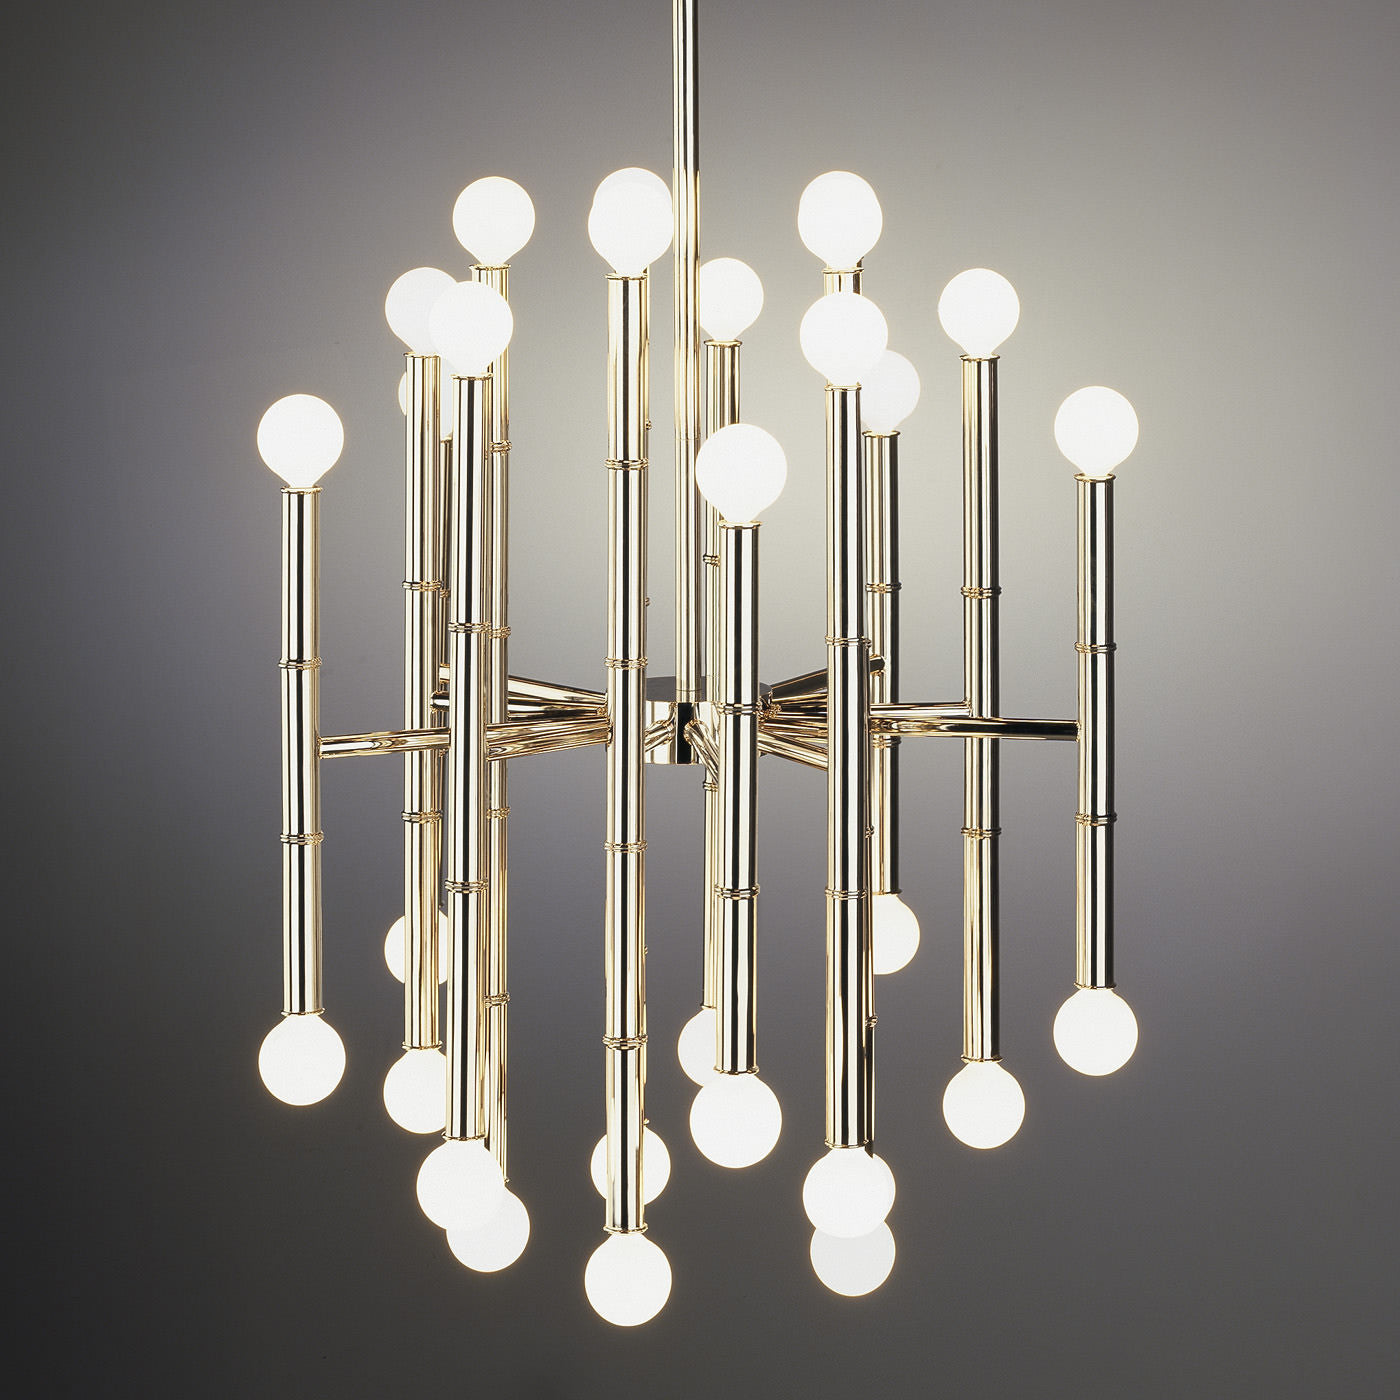 Jonathan Adler Meurice Chandelier Polished Nickel – CLAYTON GRAY HOME